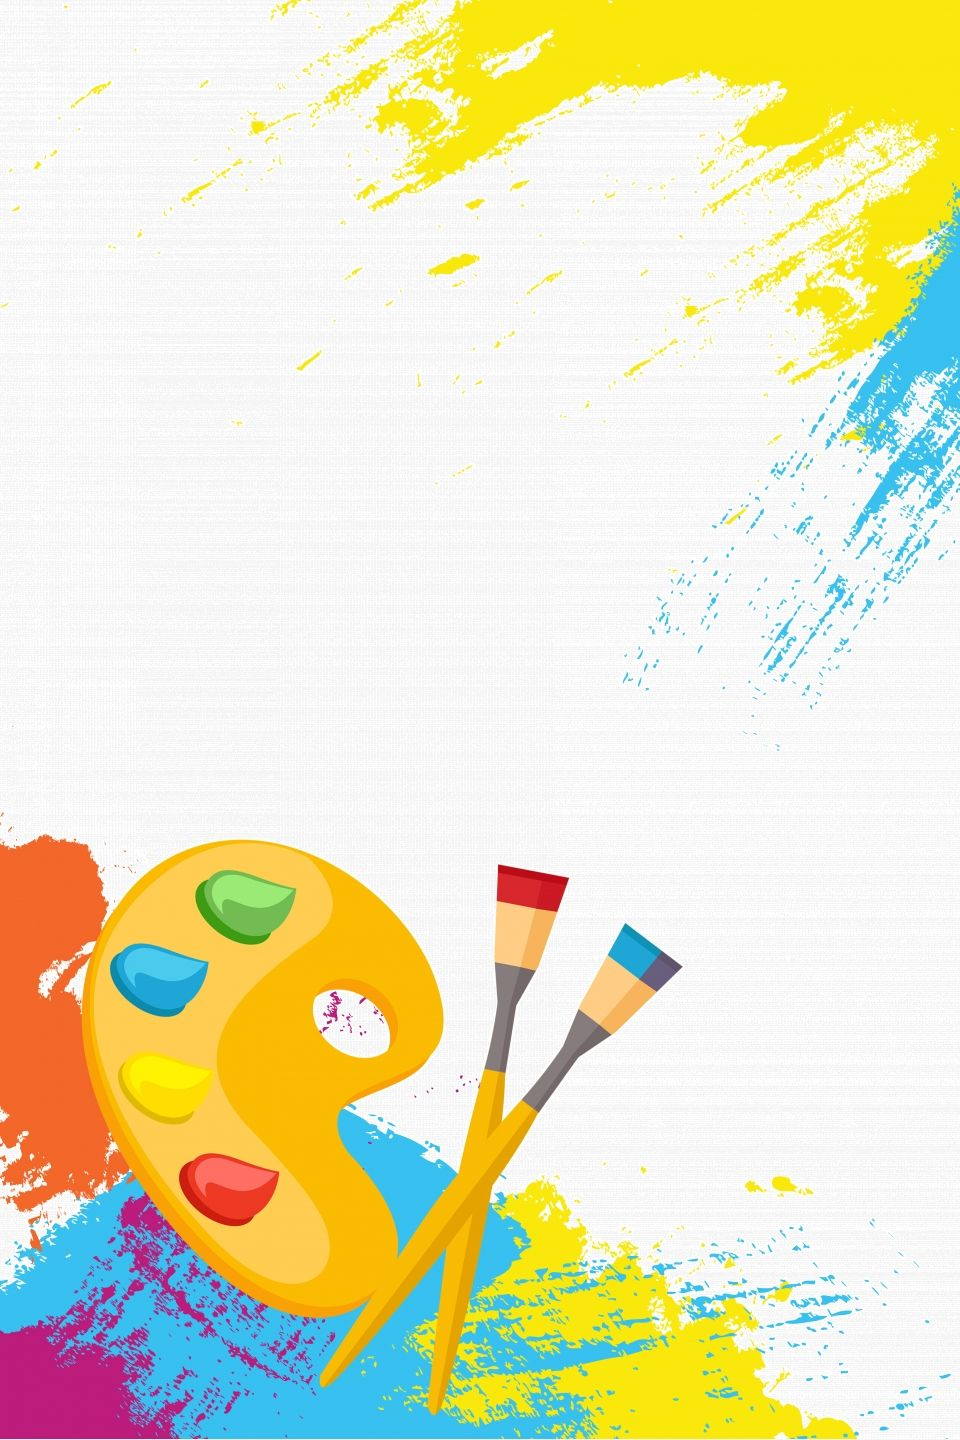 Painting Class Art Class Admission Poster Background Material Art Class Posters Class Poster Design Art Drawings For Kids